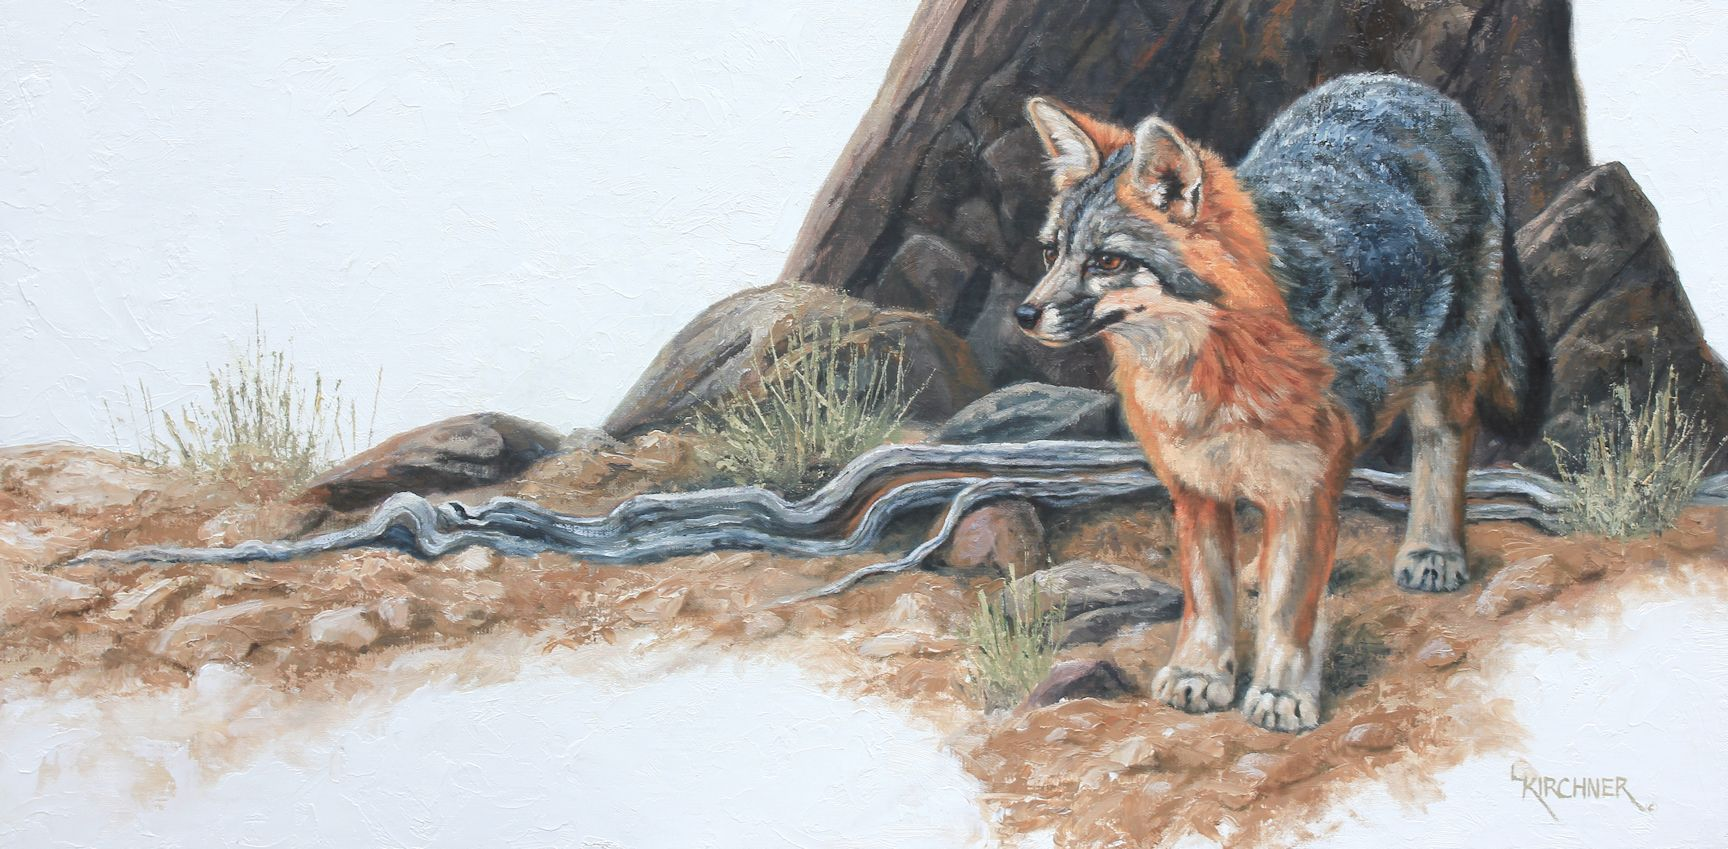 Leslie Kirchner, leslie kirchner art, leslie kirchner artist, western art, wildlife art, nature art, wildlife artist, western artist, nature artist, wild canid, fox, gray fox, greay fox, grey fox art, grey fox painting, gray fox art, gray fox painting